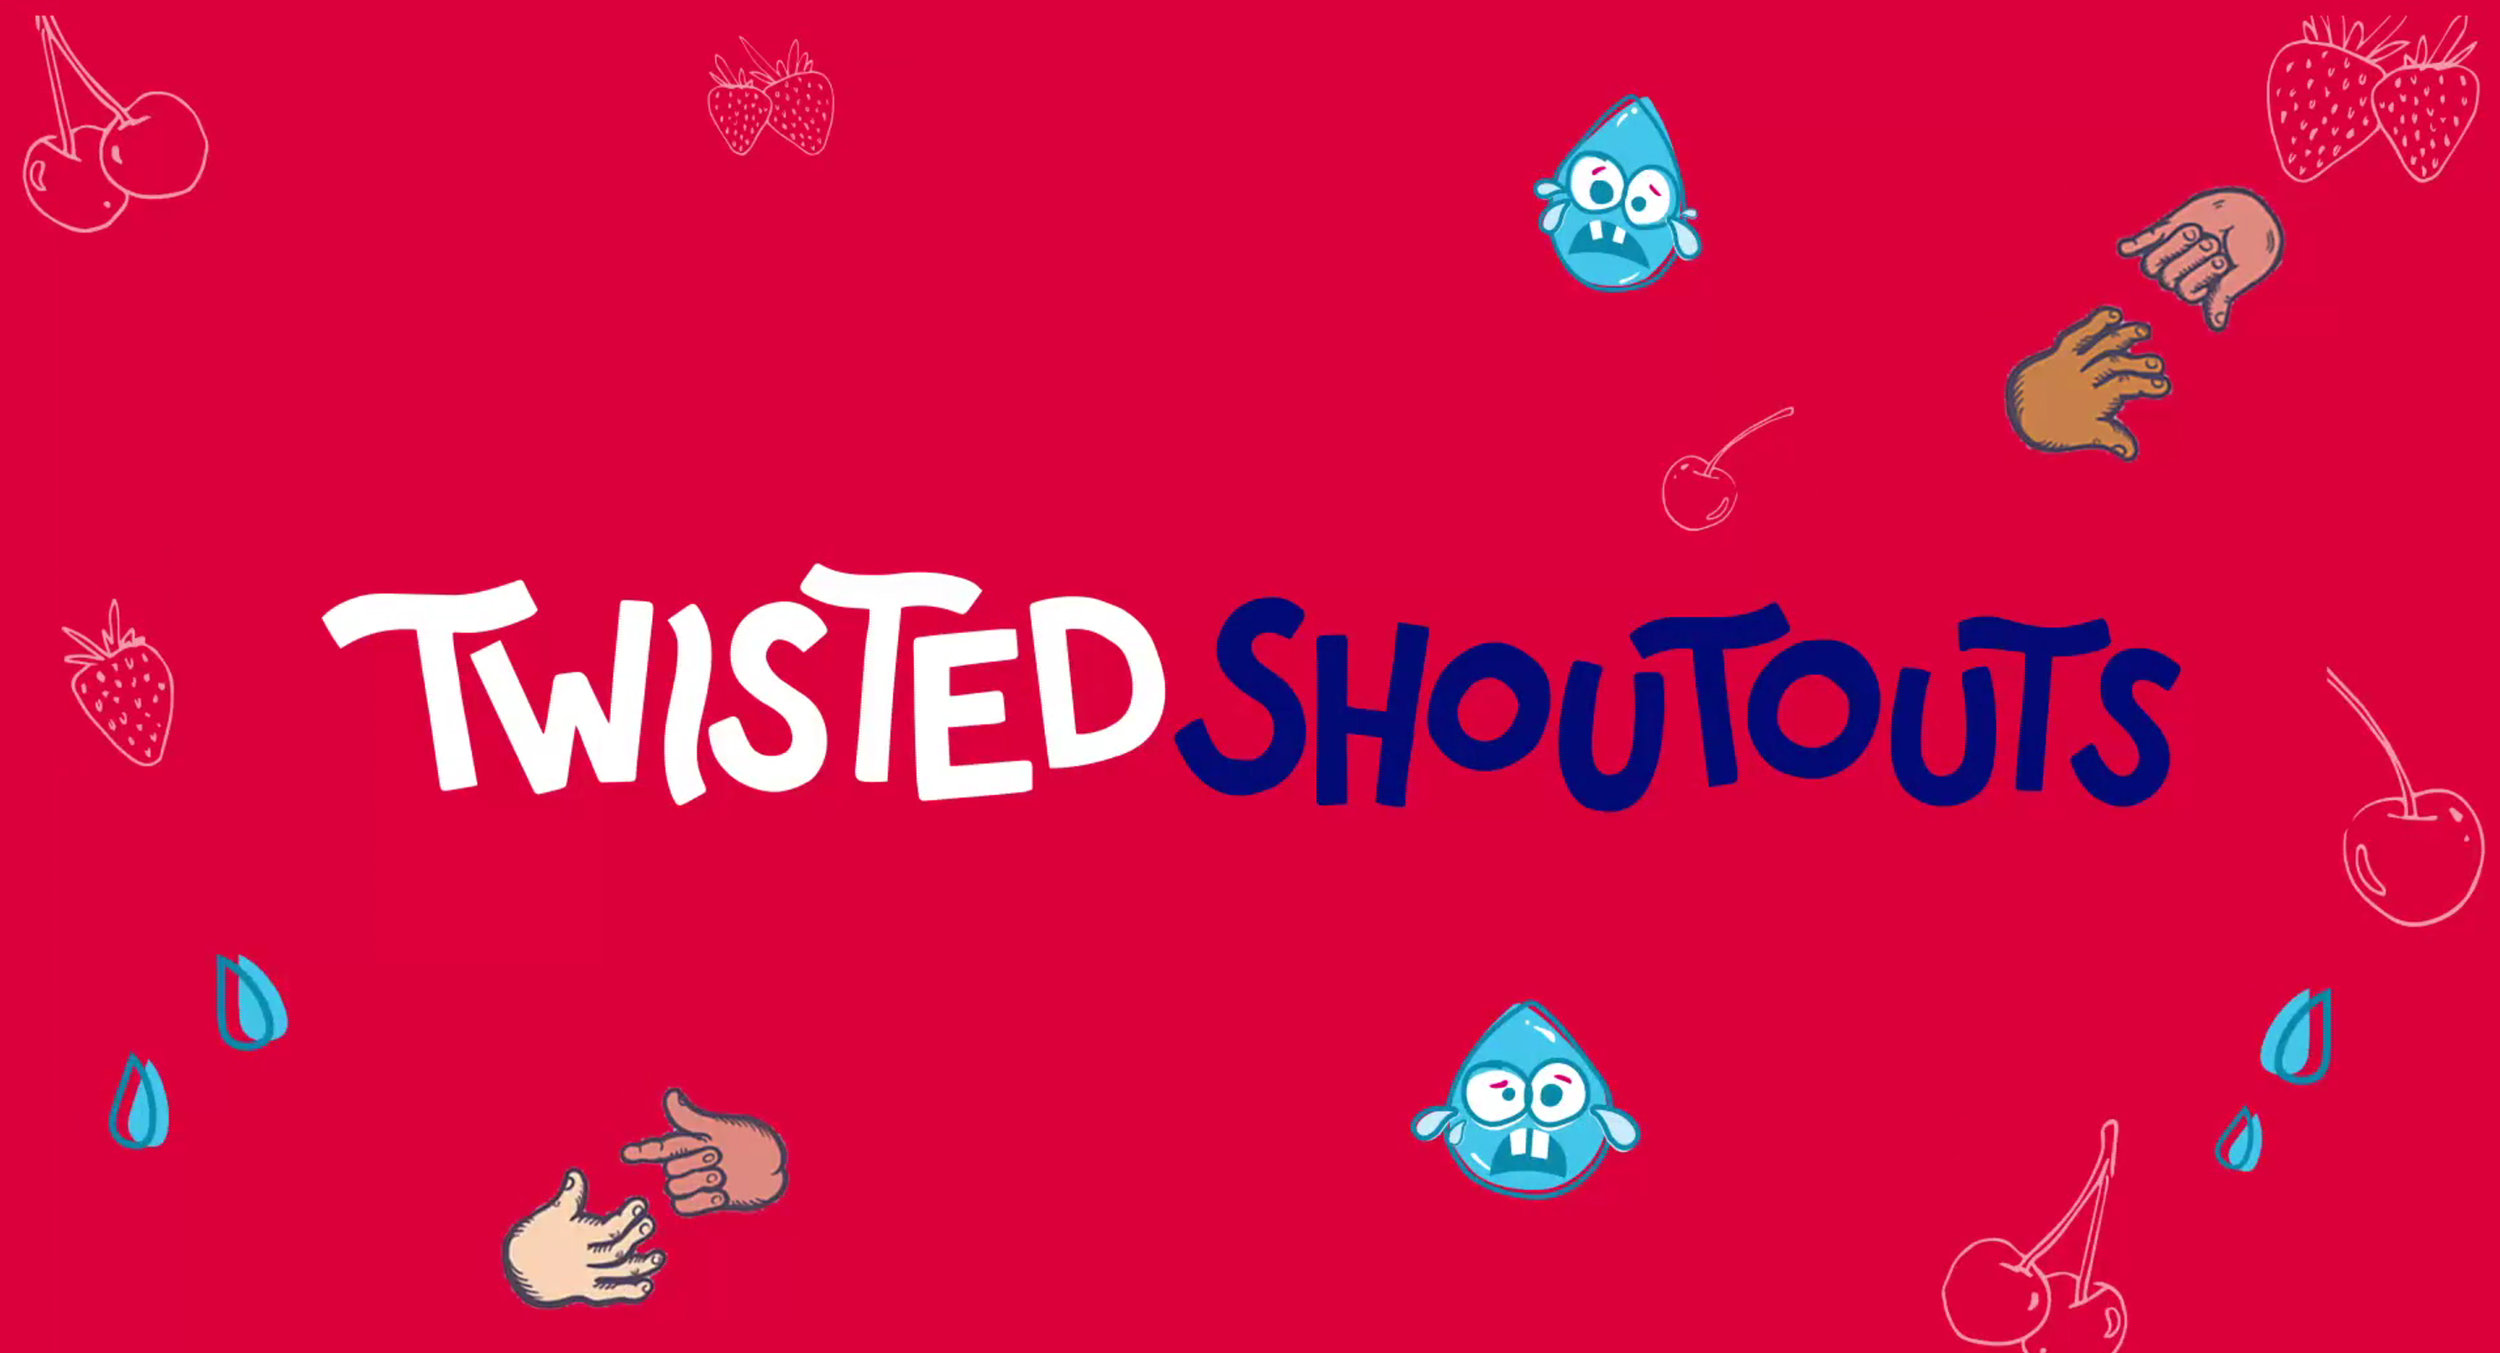 The hand-lettered campaign's logo.  Click here to watch Twisted Shoutouts artwork highlights .